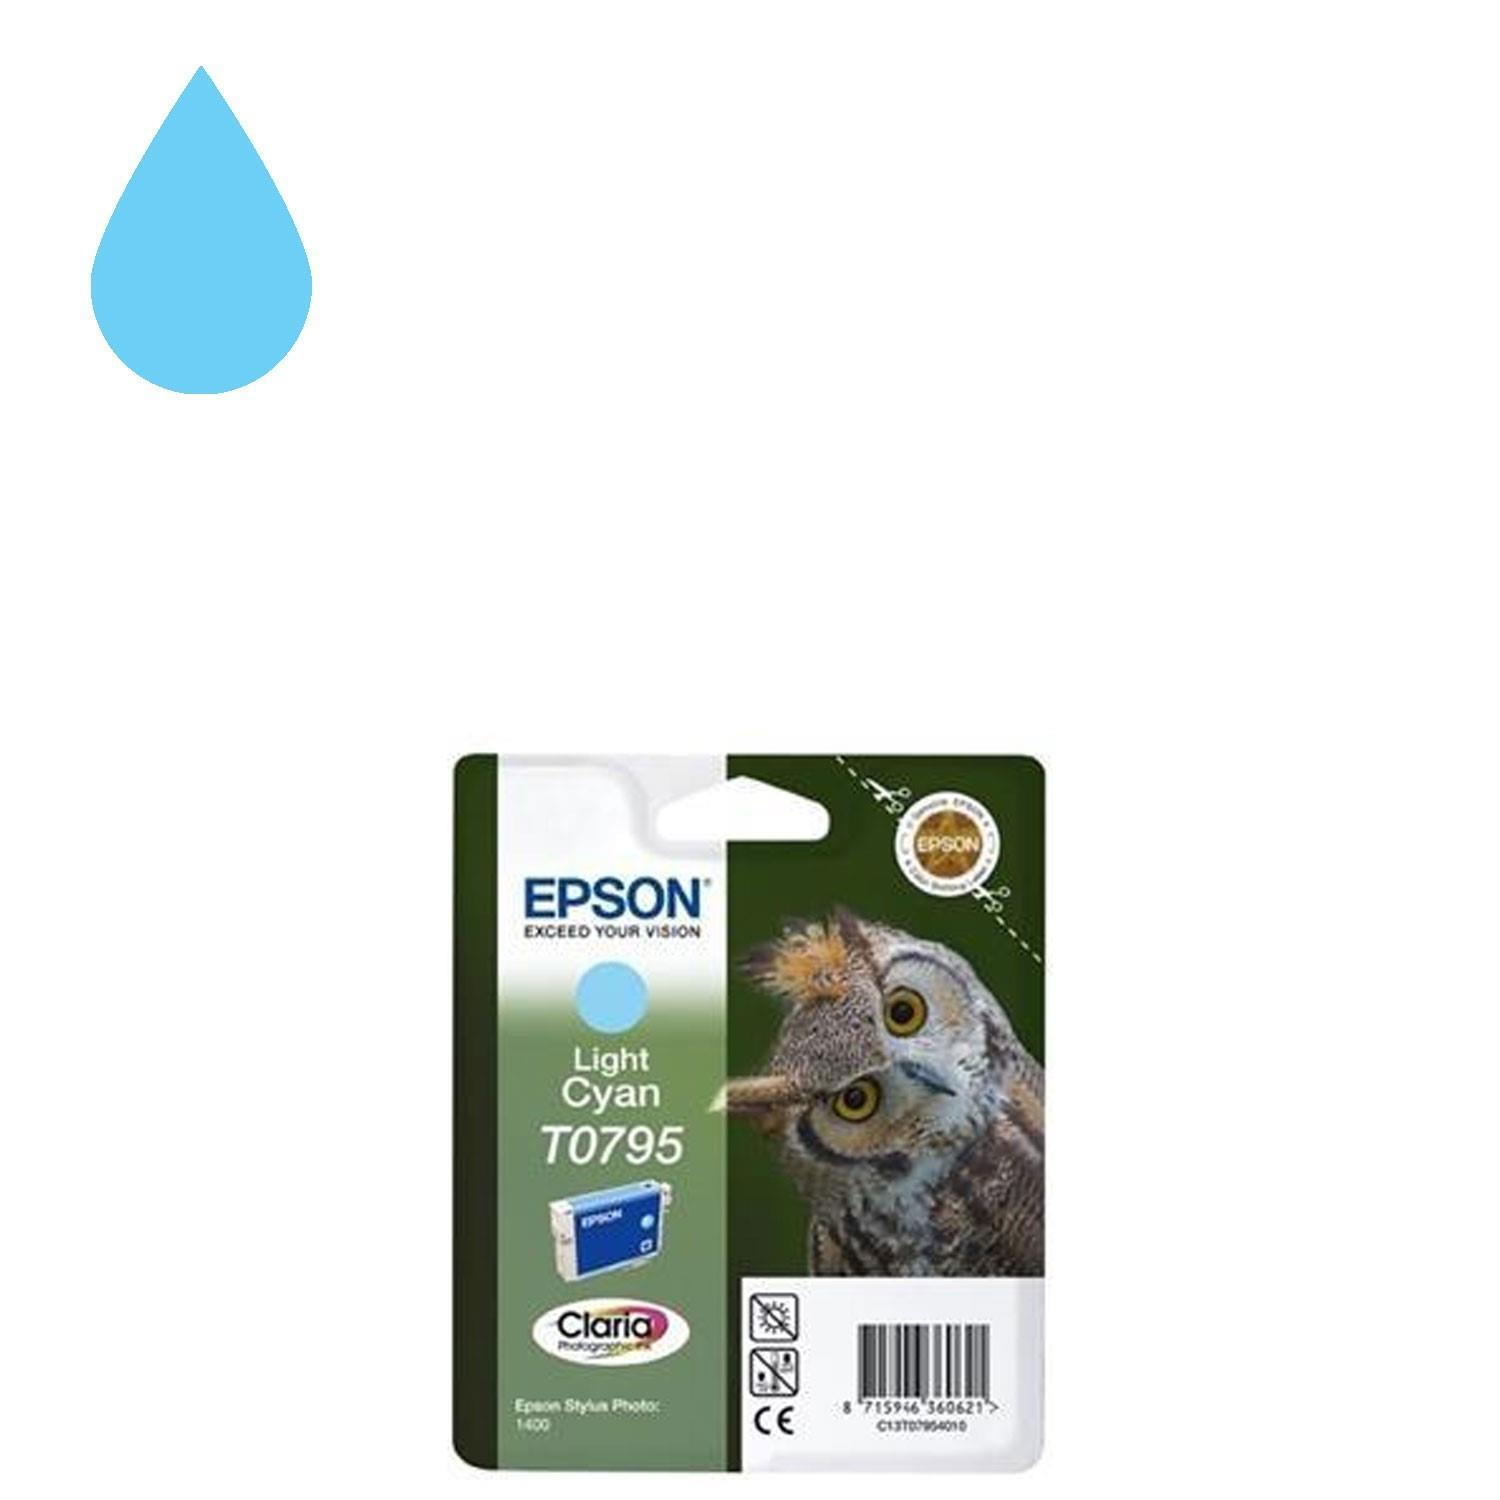 Epson Claria T0795 Ink Owl Light Cyan Cartridge